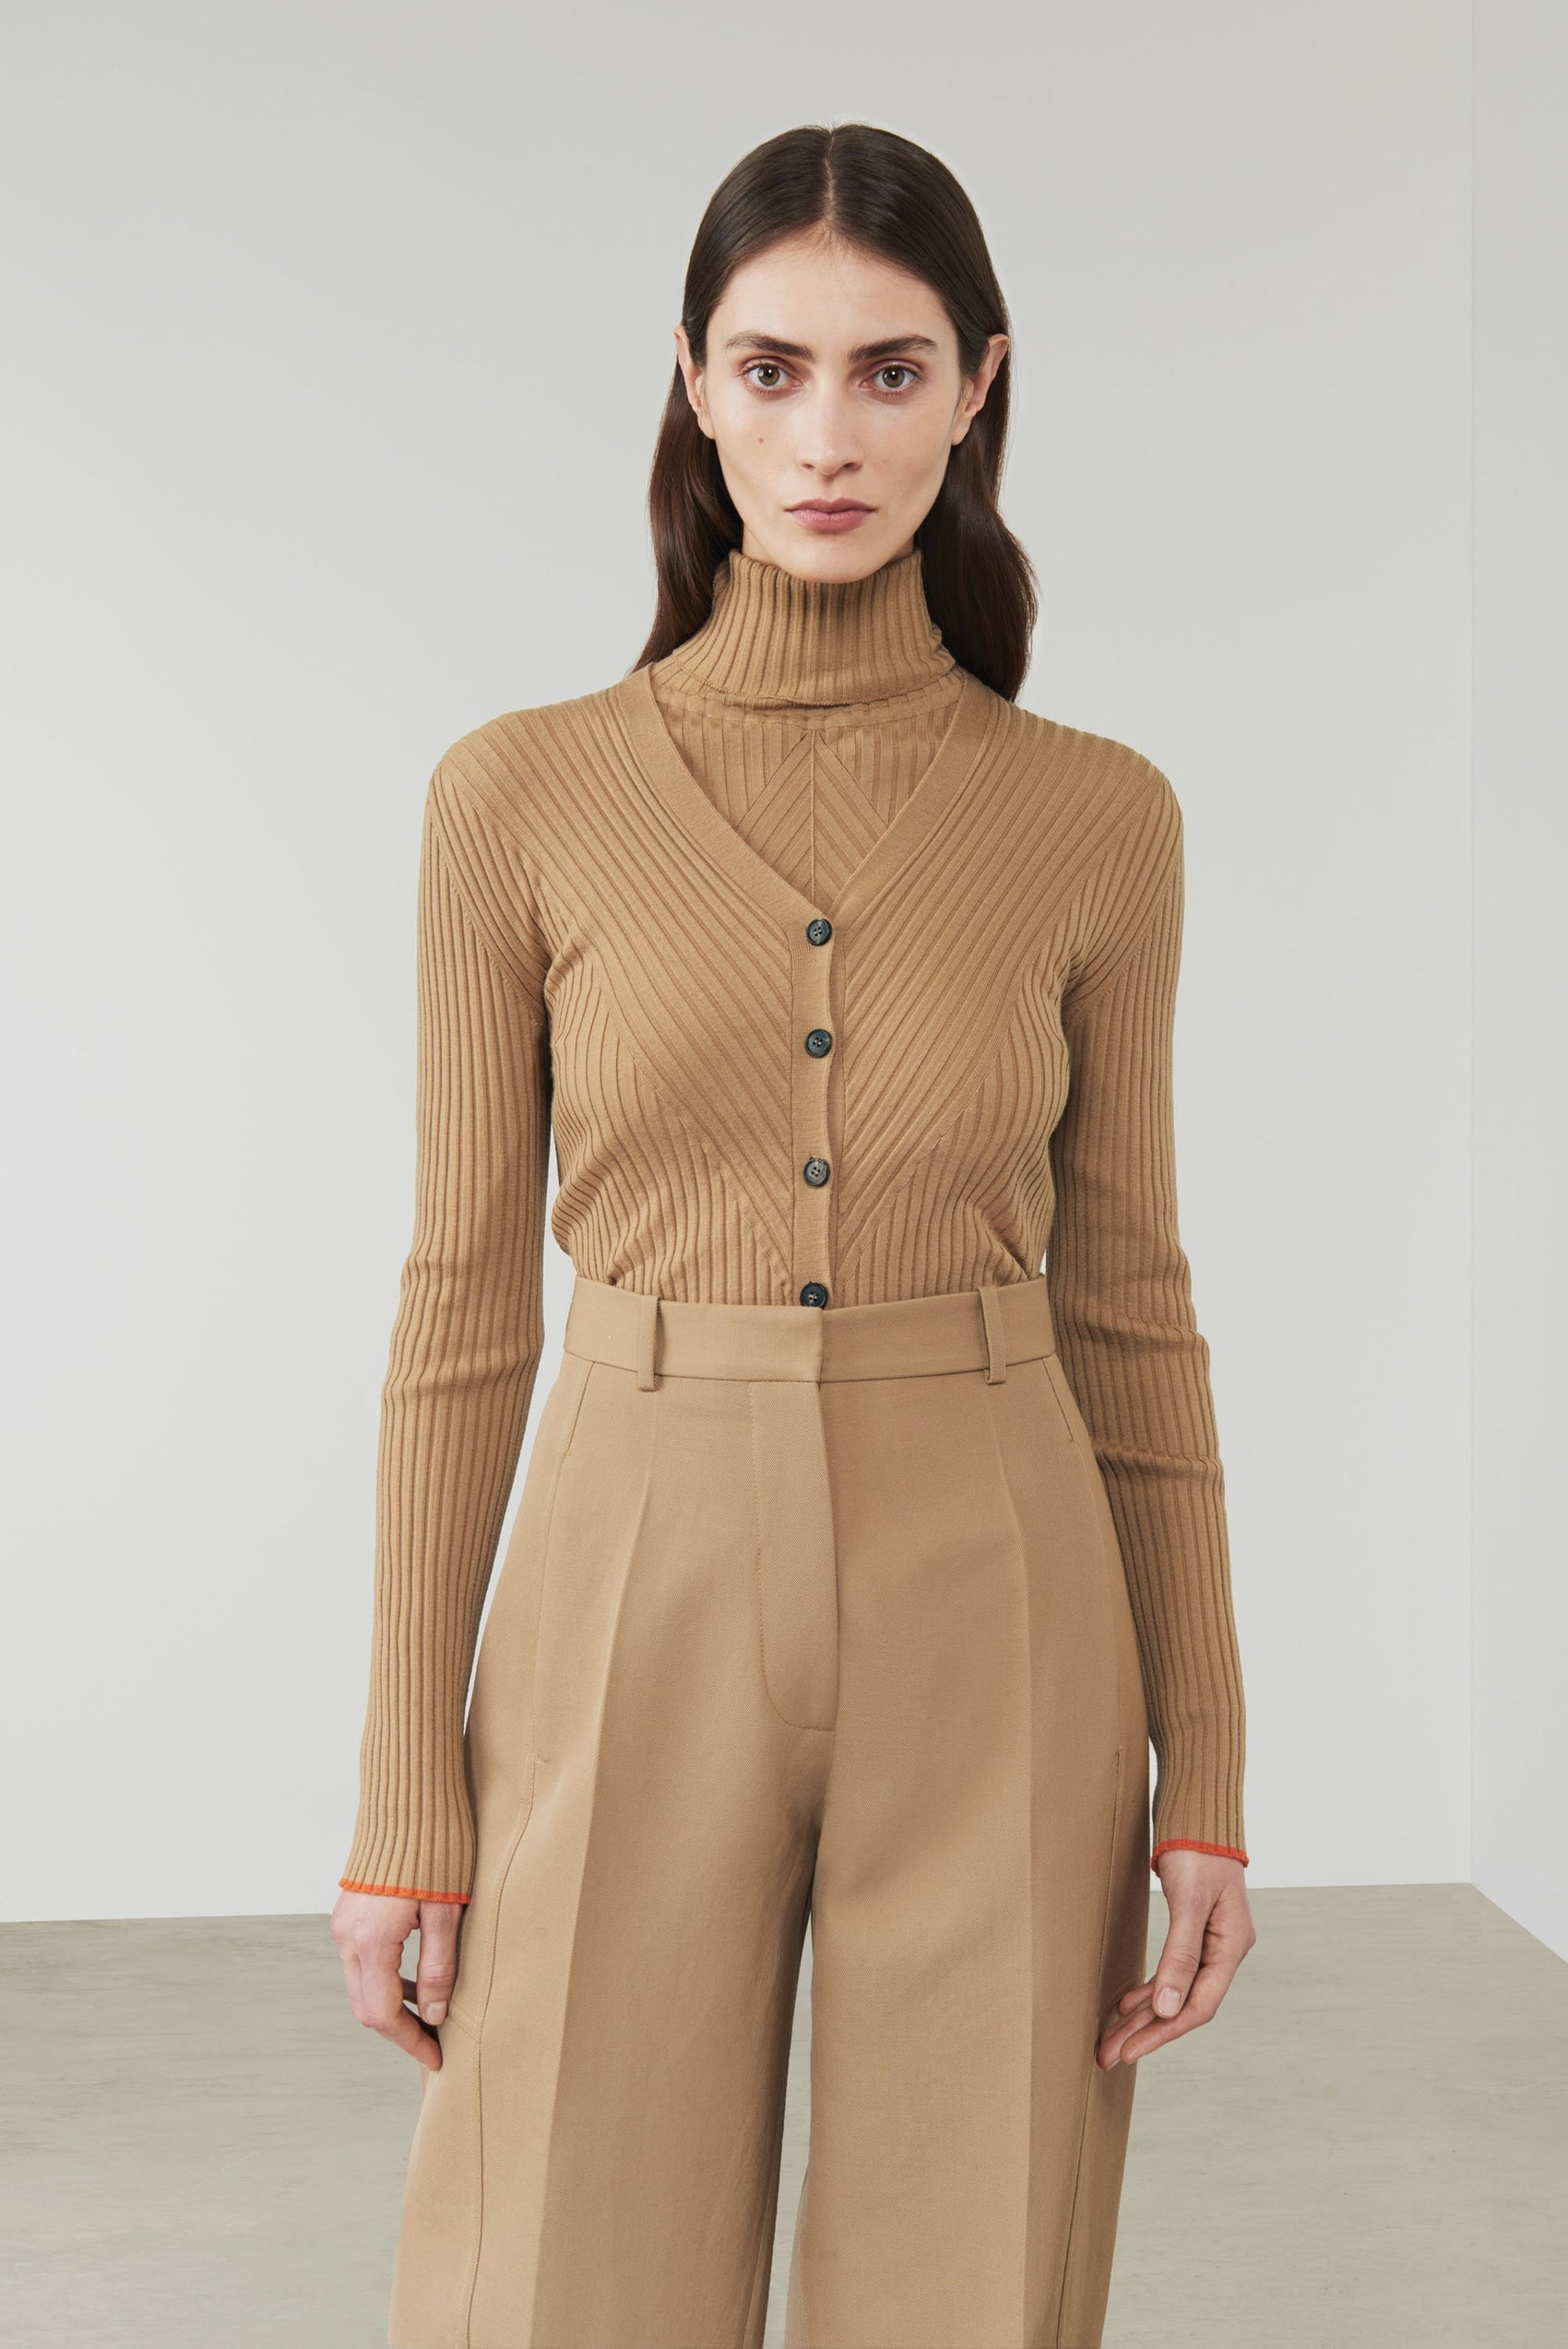 Beige outfit - Autumn/Winter 2019 must-haves